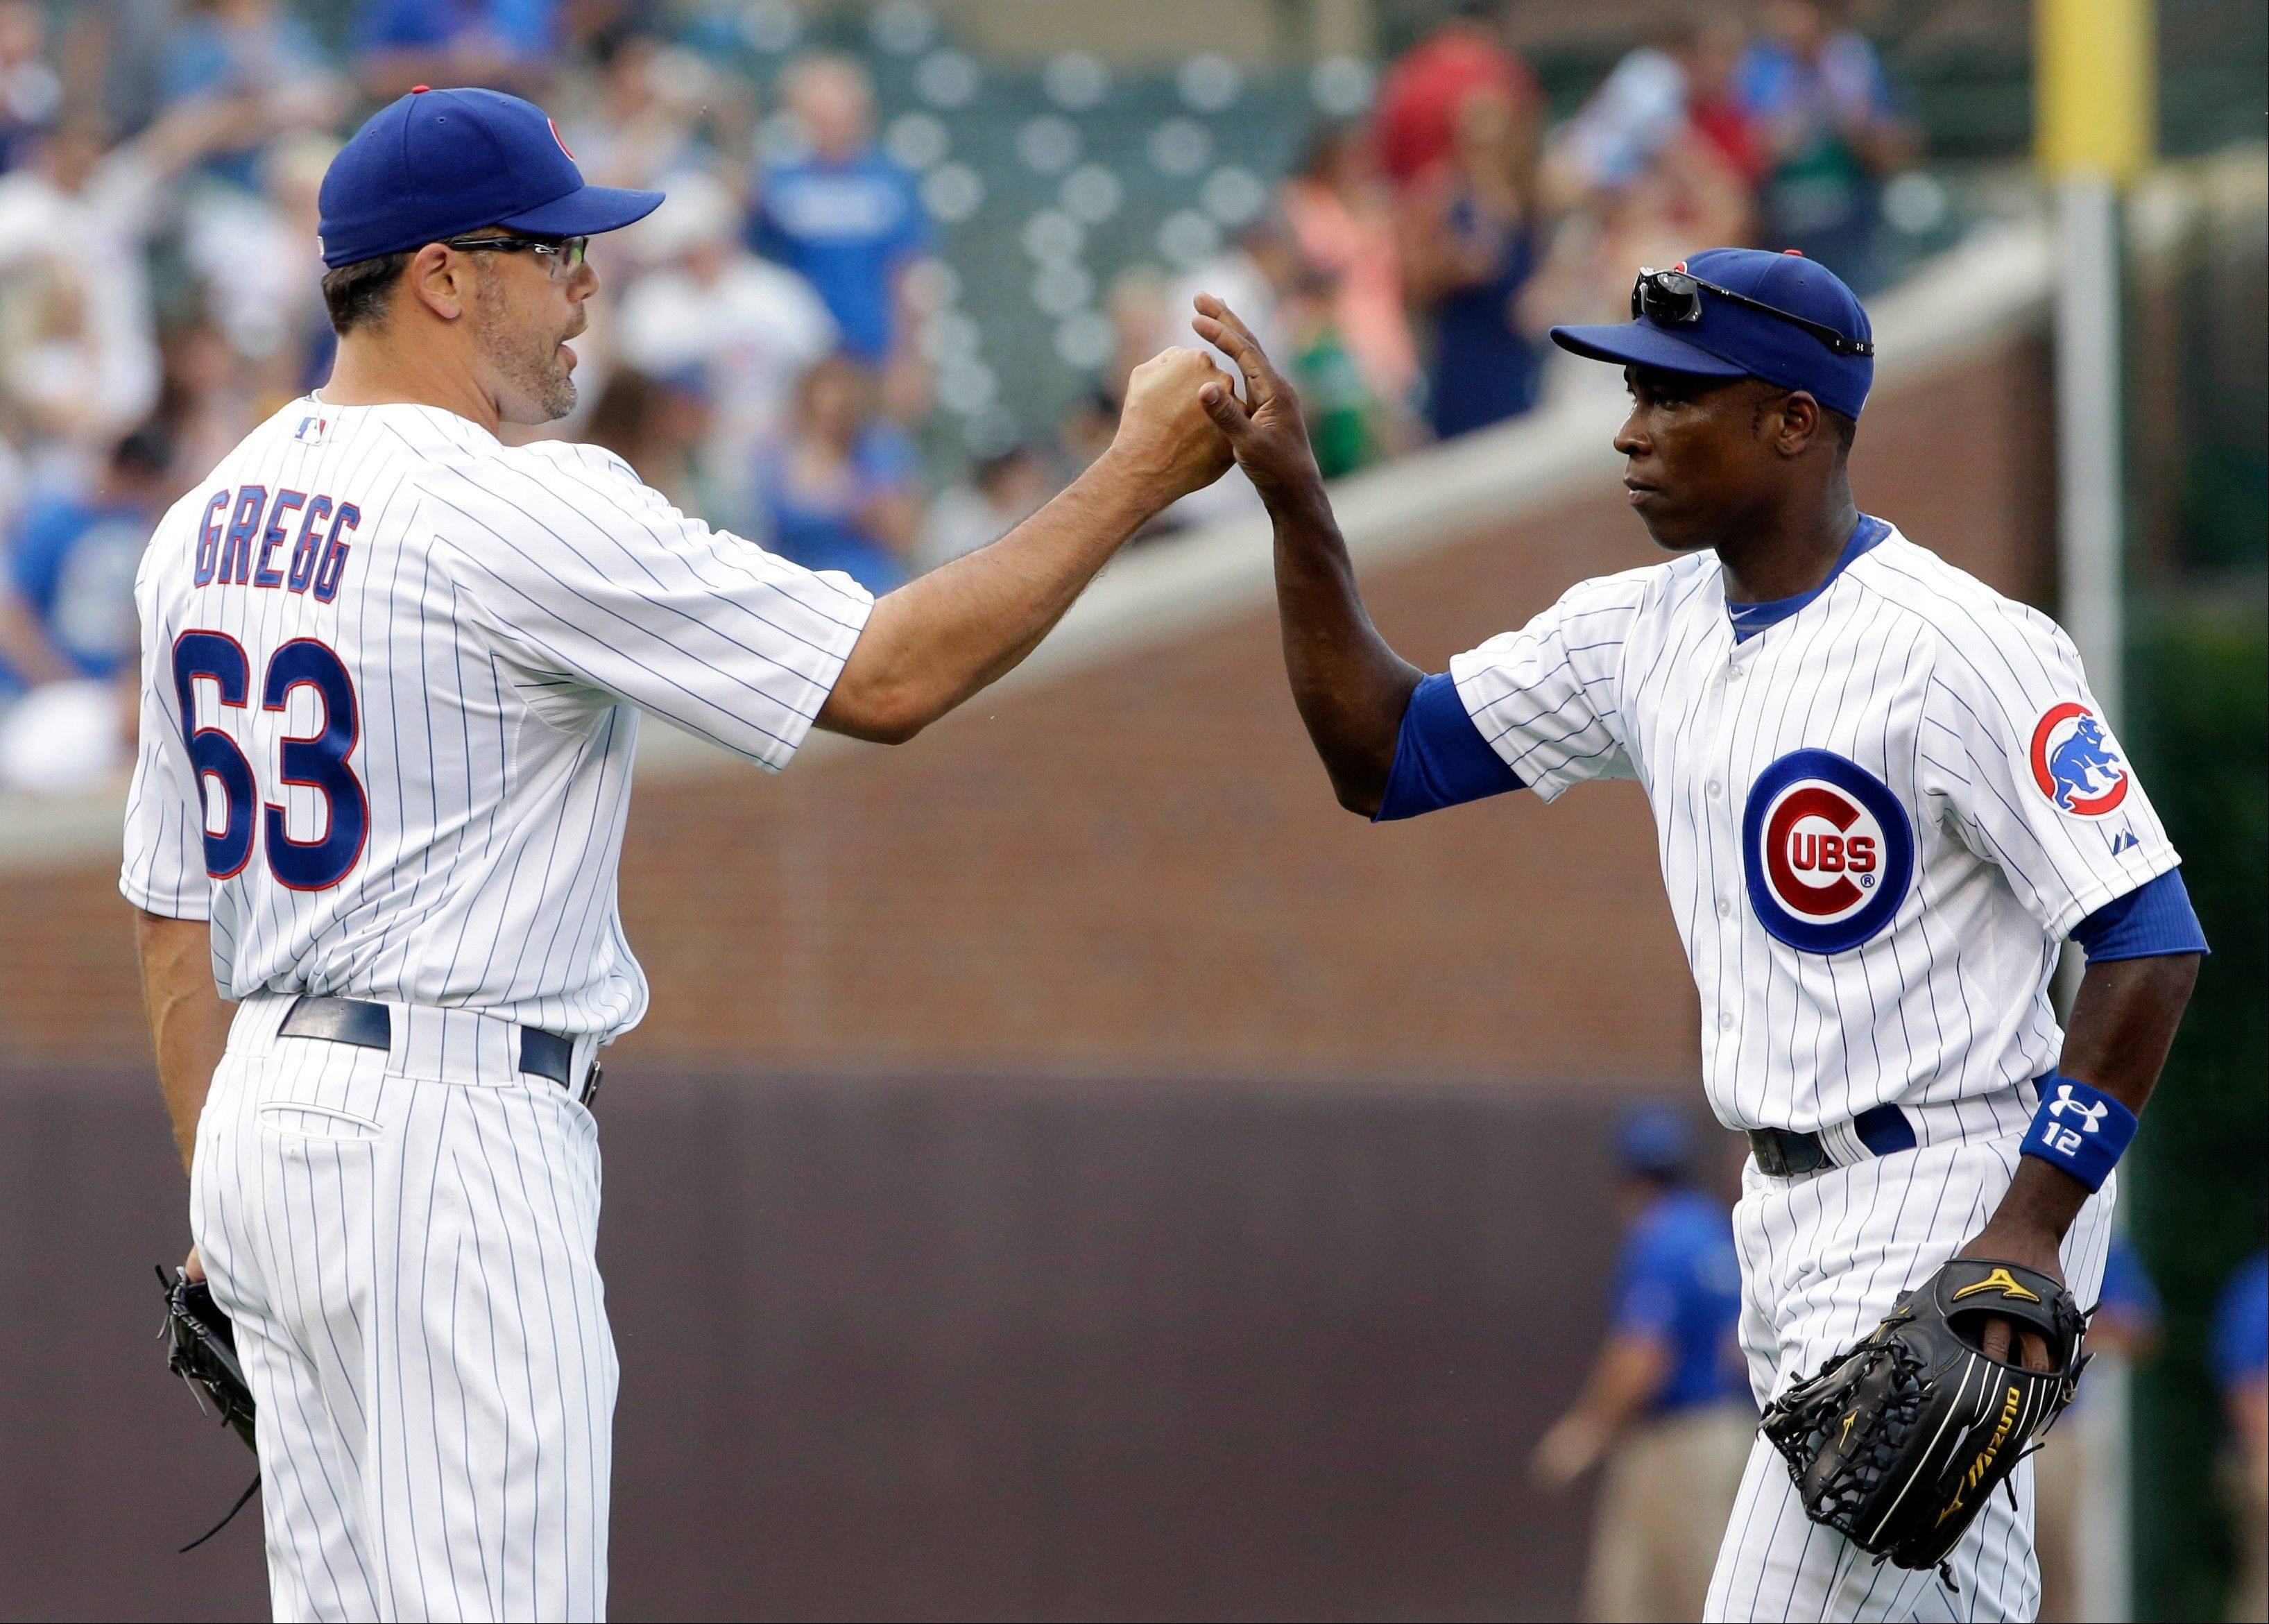 Cubs outfielder Alfonso Soriano, right, celebrates with closer Kevin Gregg after the Cubs defeated the Pittsburgh Pirates 4-1 Saturday at Wrigley Field.